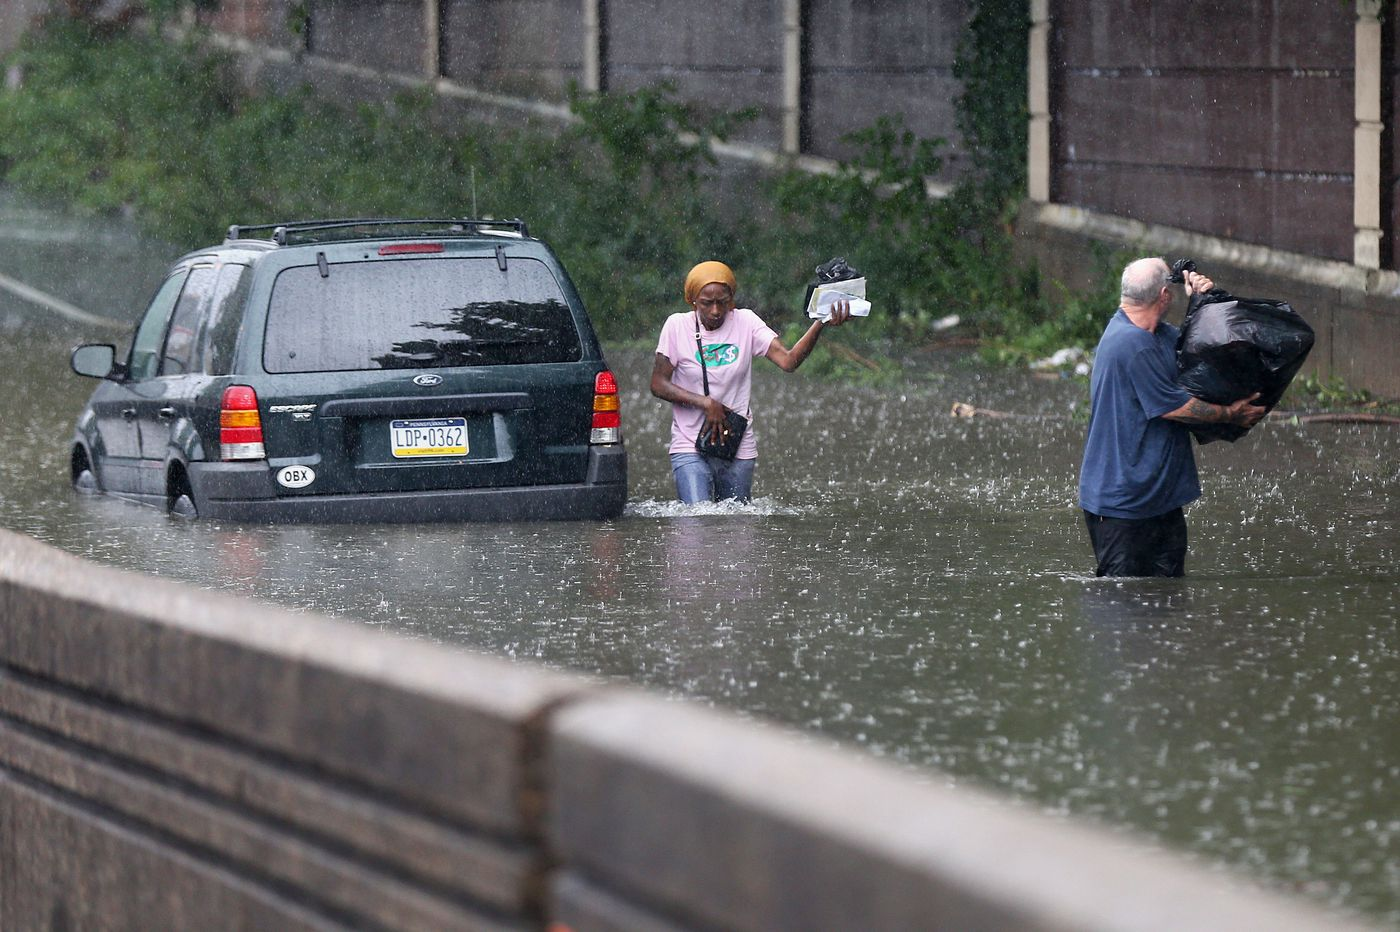 Heavy rains cause flooding at Shore and in Philly as Tropical Storm Fay deluges the region